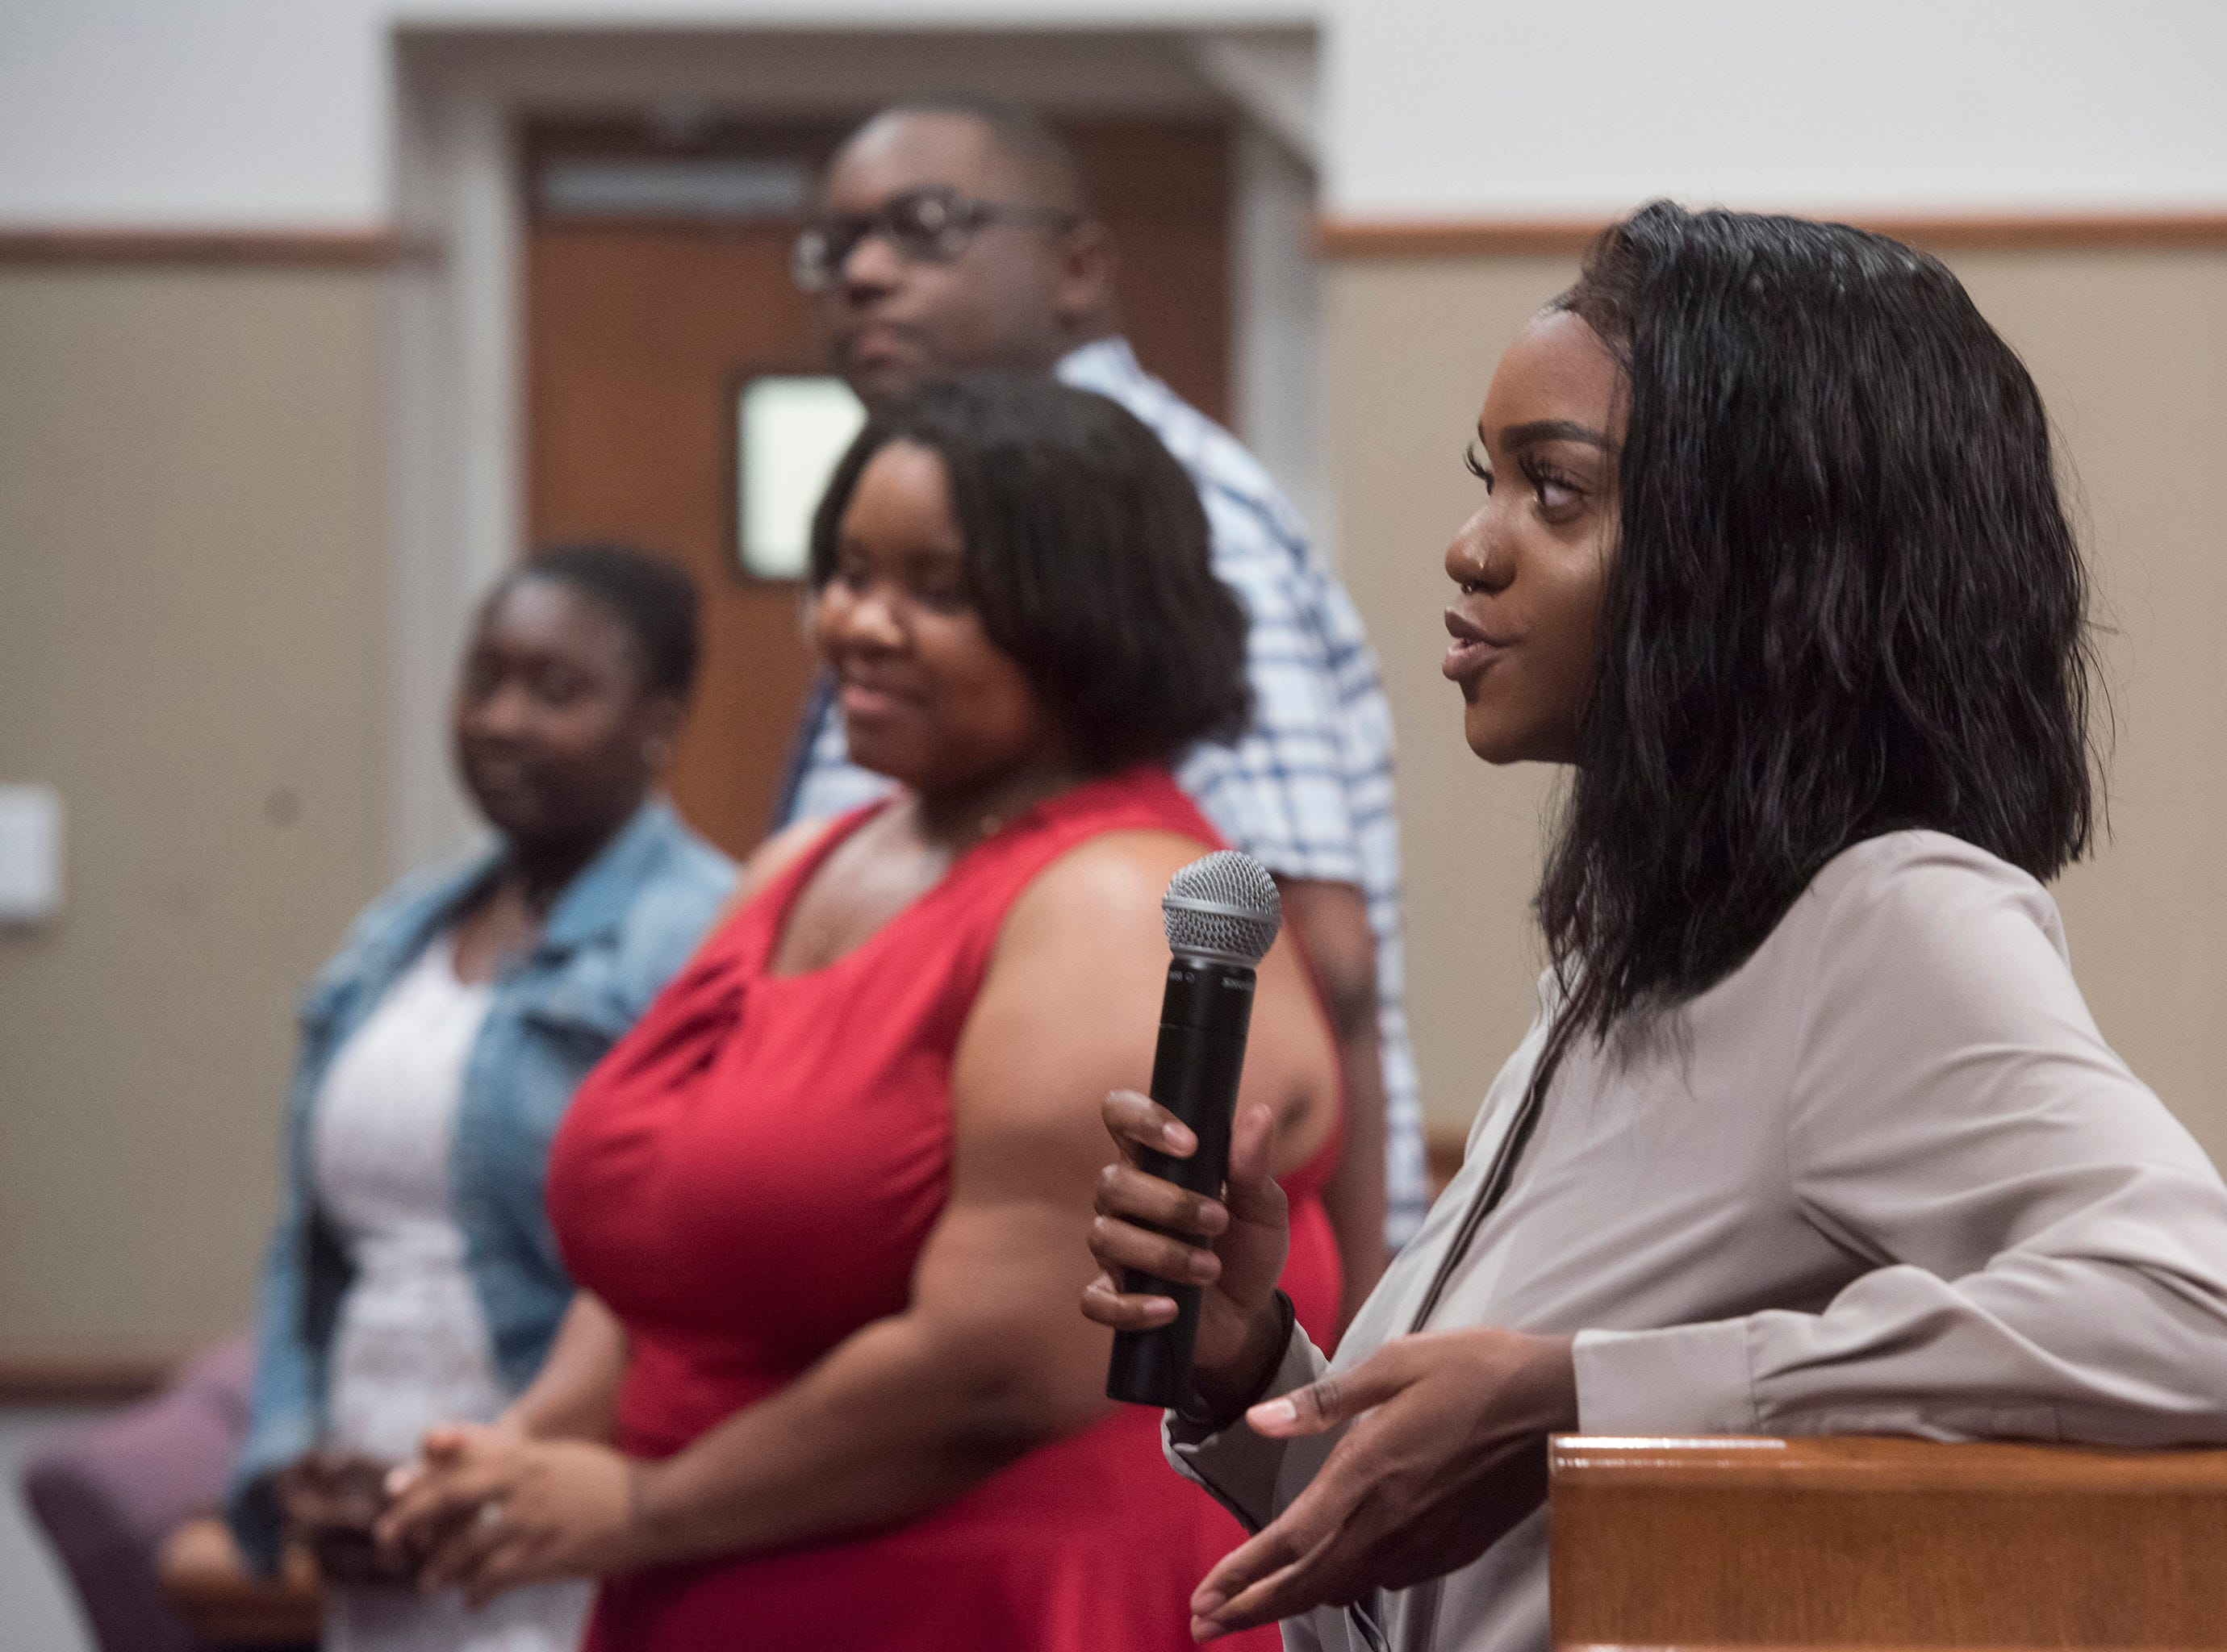 Faith Glaze, right, praises Escambia County for its student internship program during a ceremony in the commission chambers to recognize the young workers Thursday, Aug. 9, 2018.